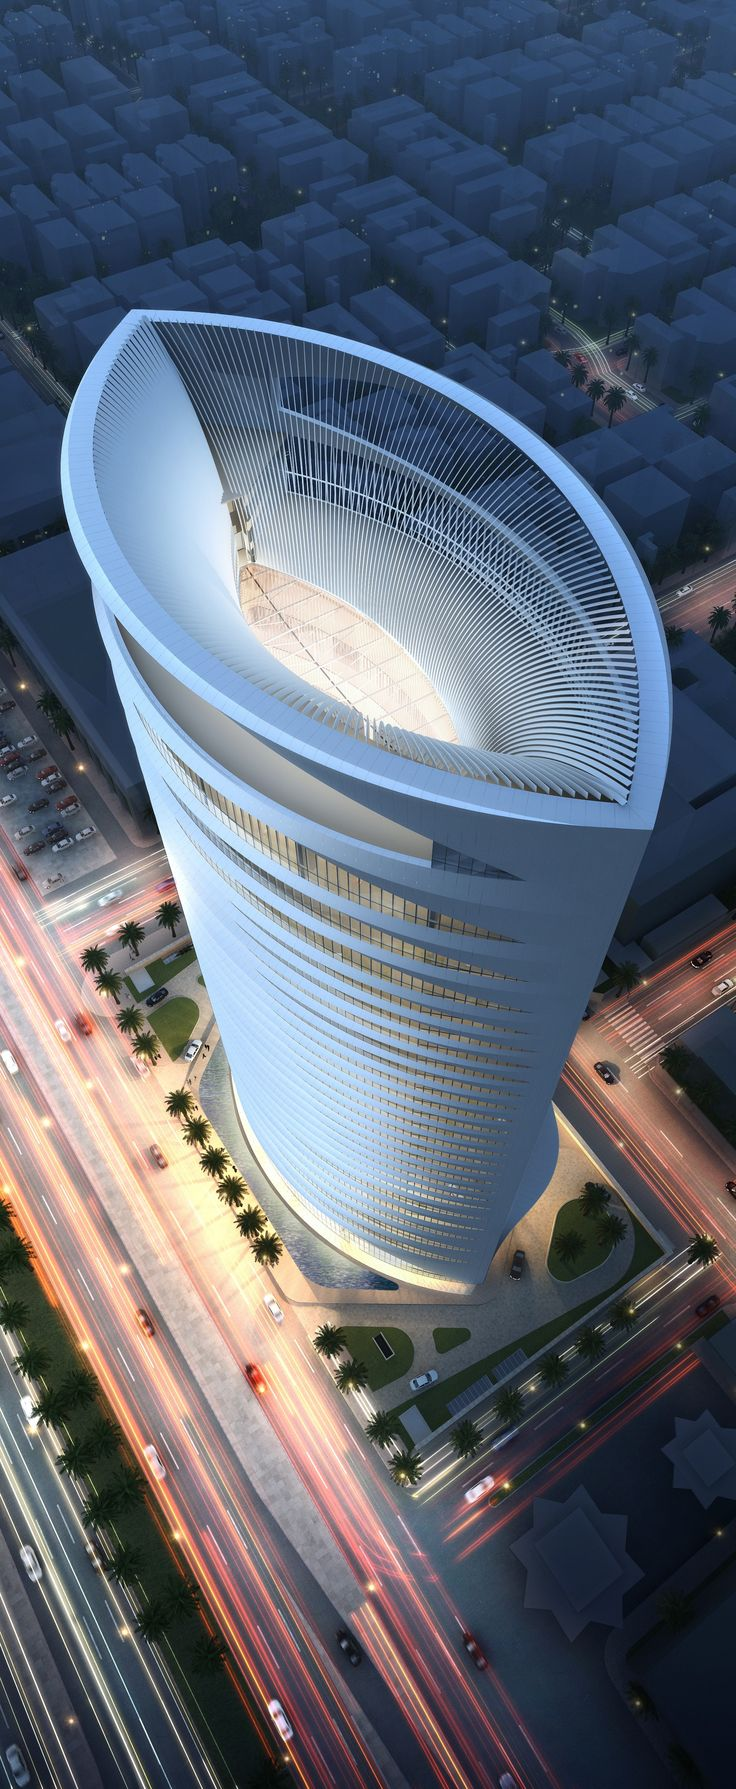 Park Hyatt Riyadh, Saudi Arabia designed by Skidmore, Owings & Merrill